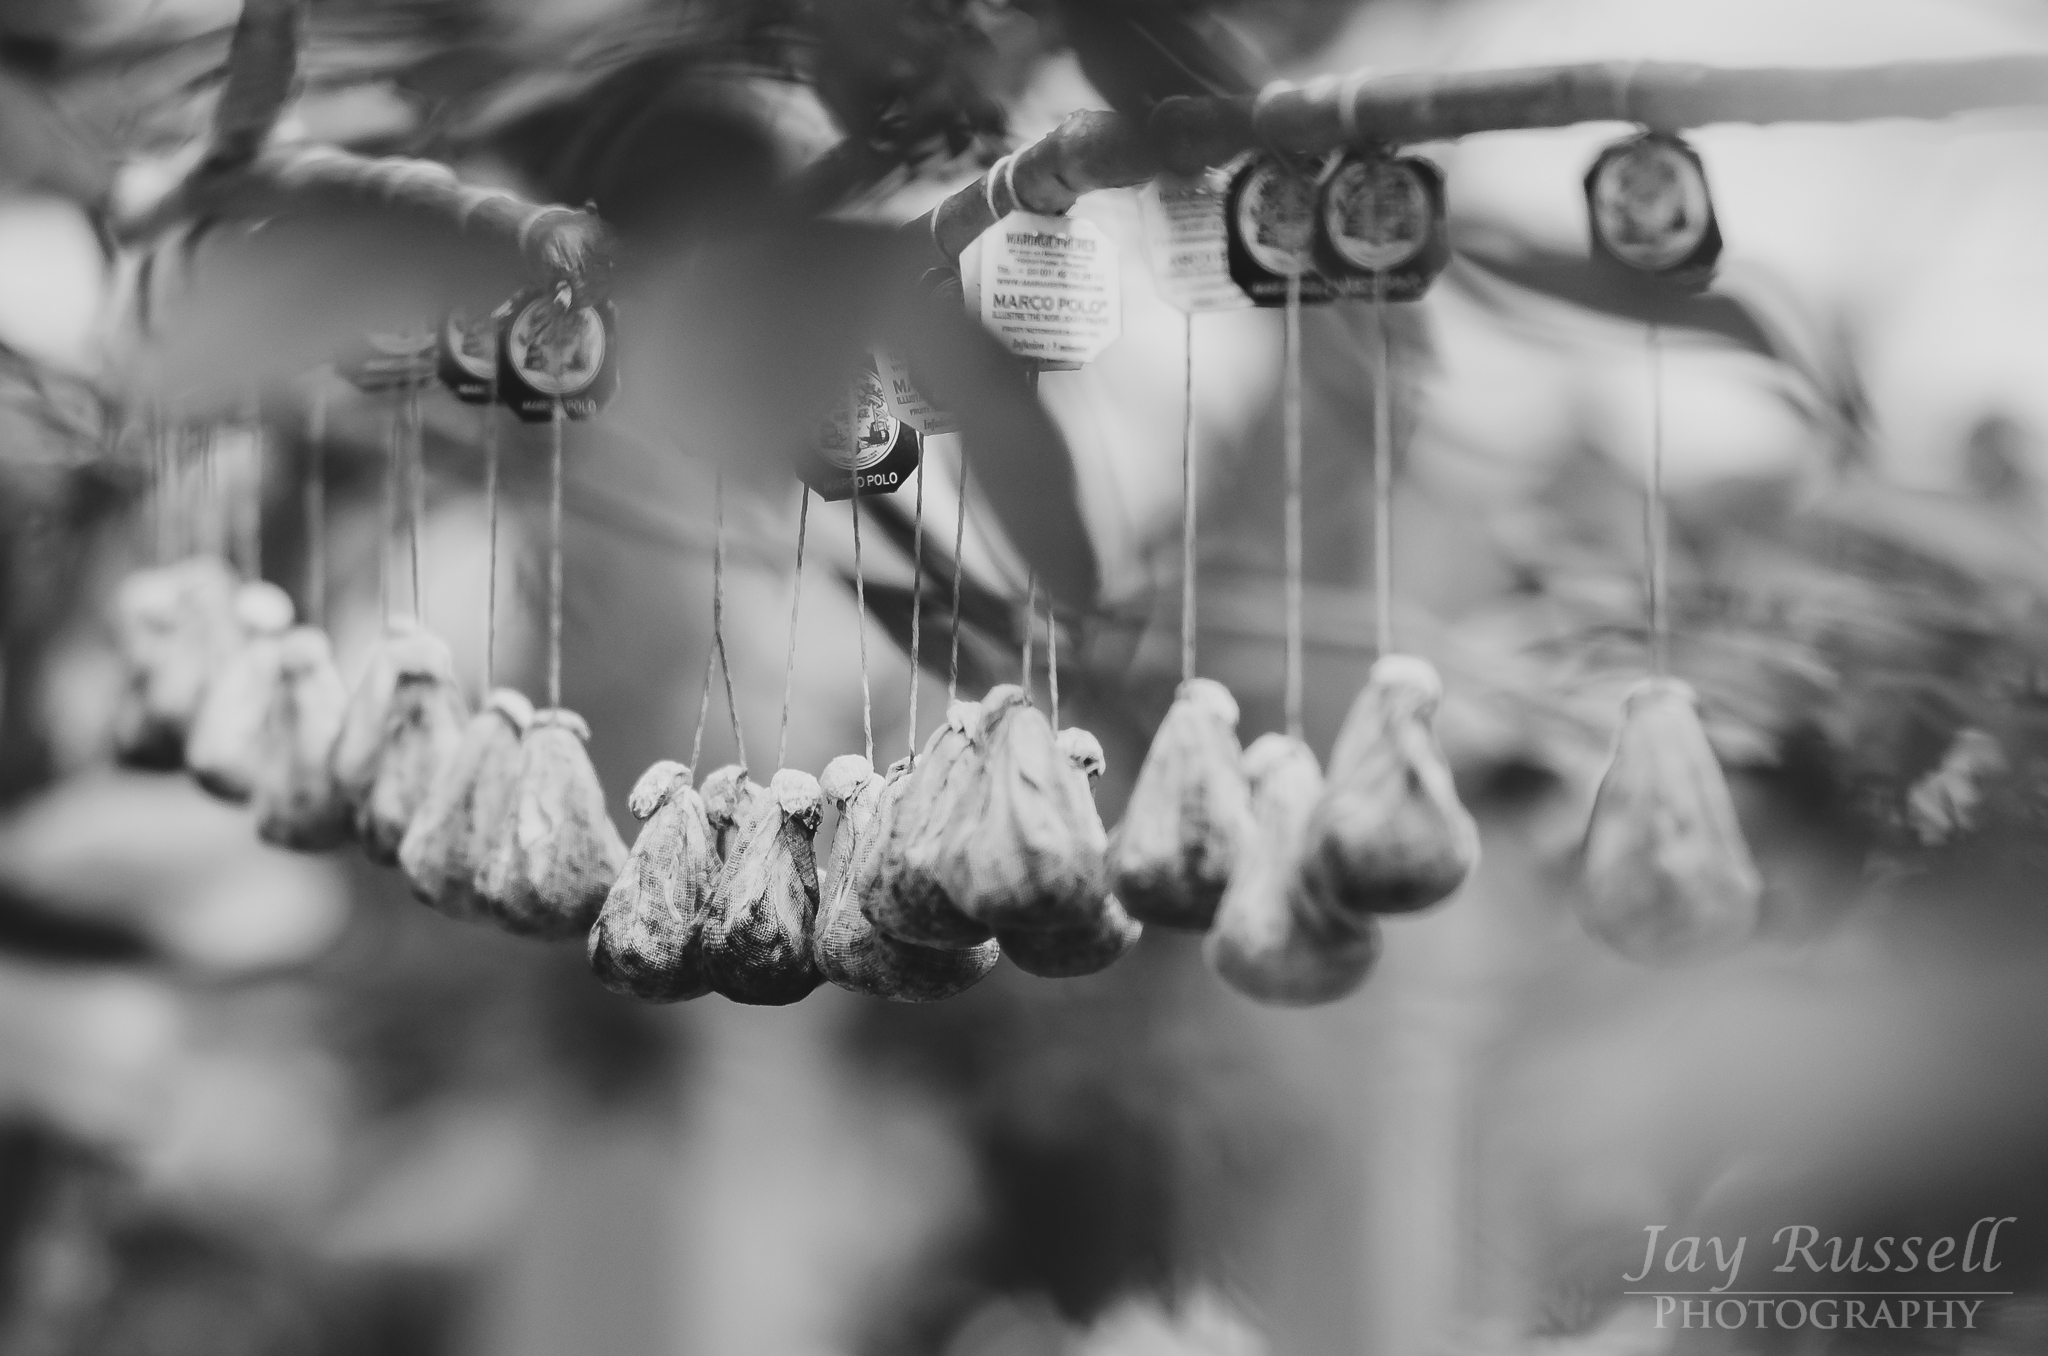 Hanging teabags in the Japanese pottery village